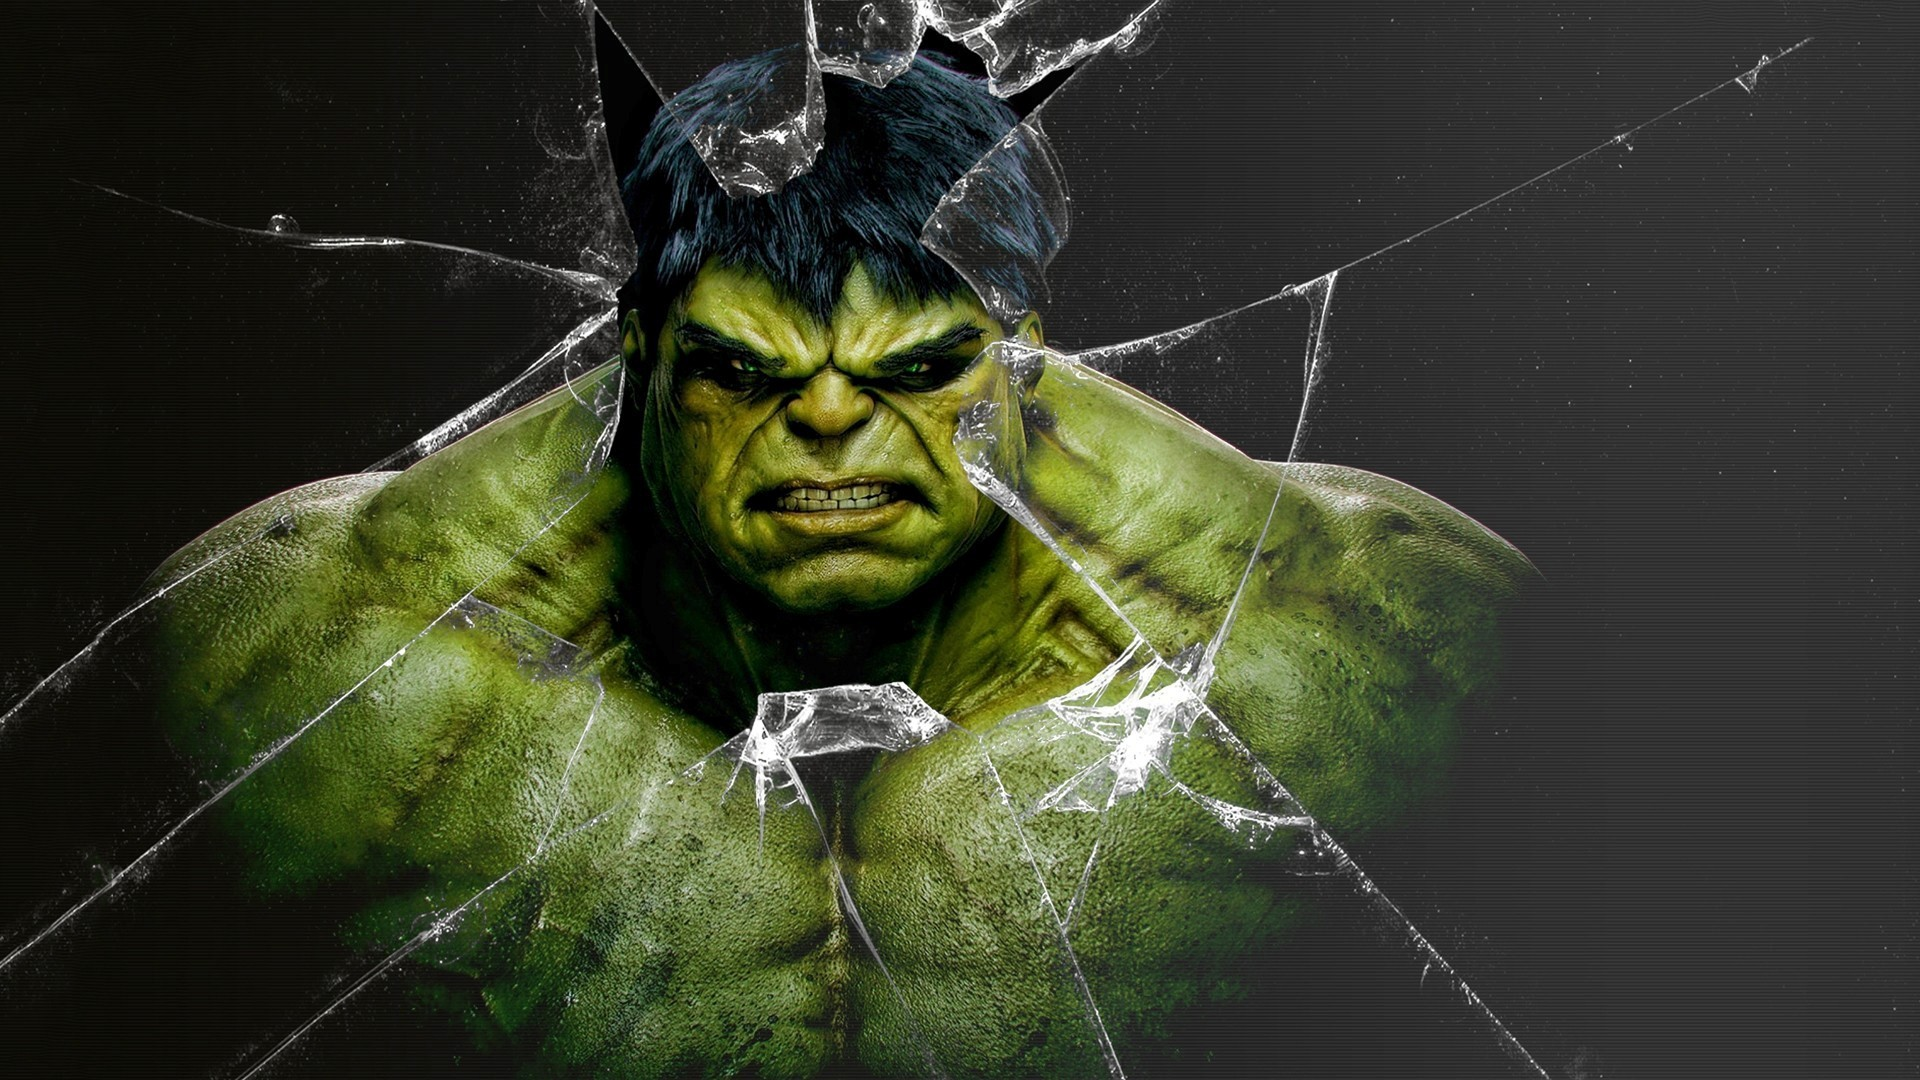 Realistic broken screen wallpaper hd 64 images - Hulk hd images free download ...